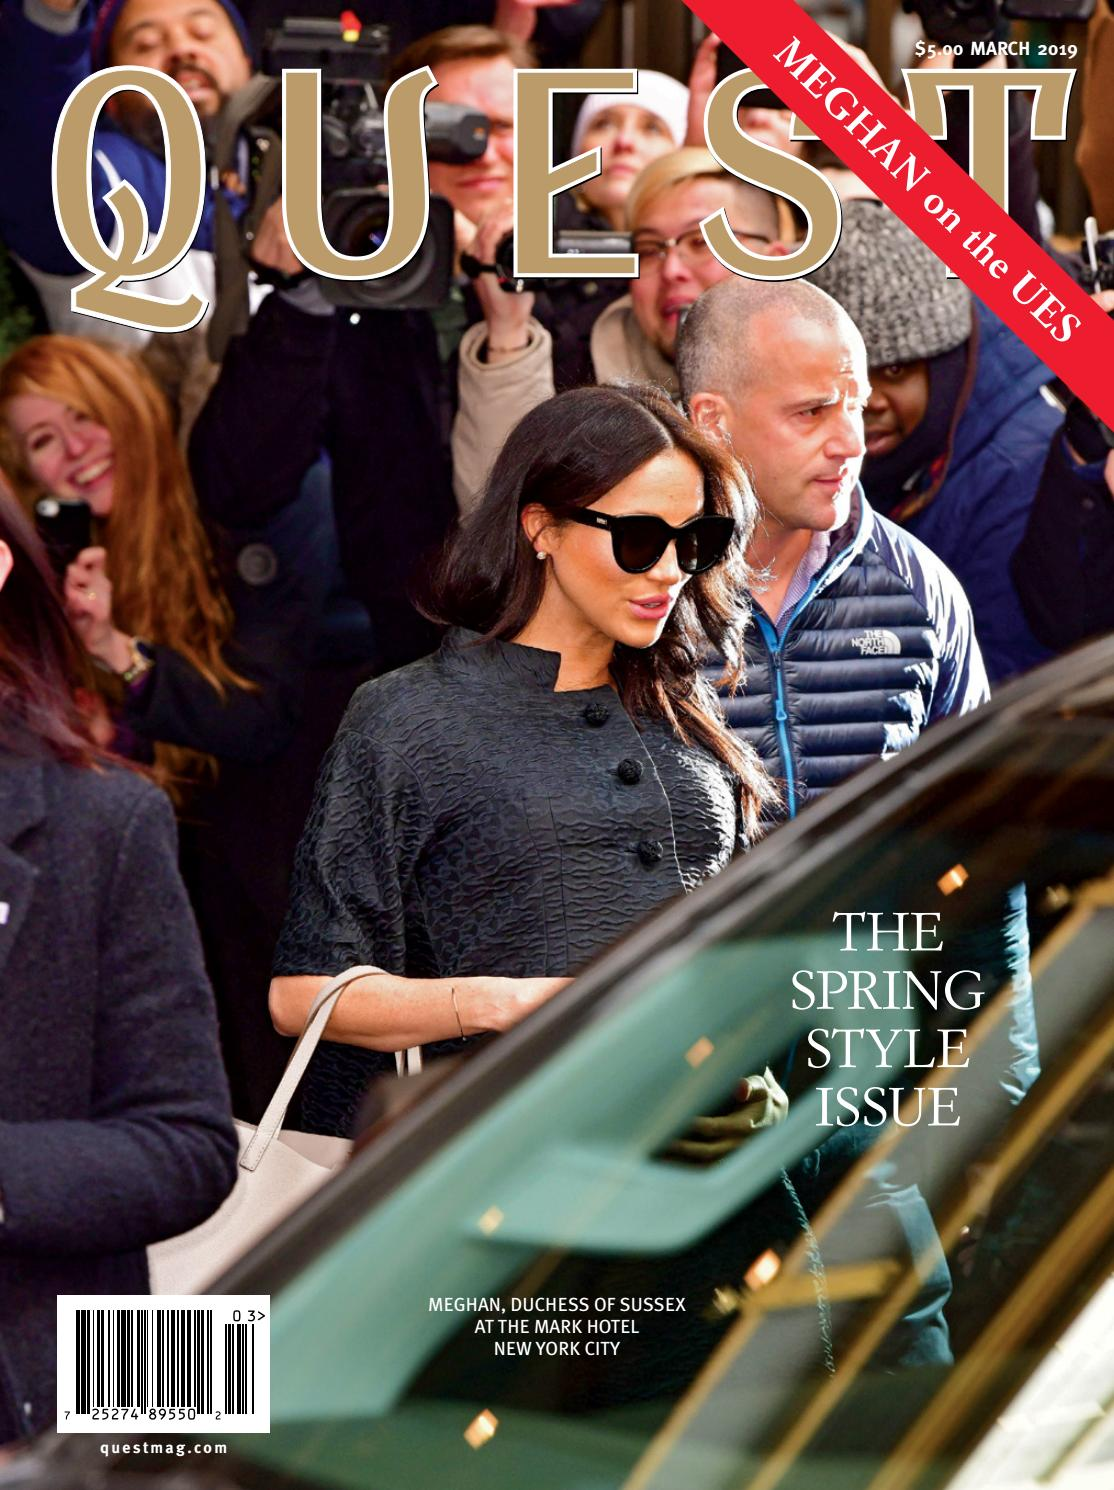 5c8826f912190 Quest March 2019 by QUEST Magazine - issuu